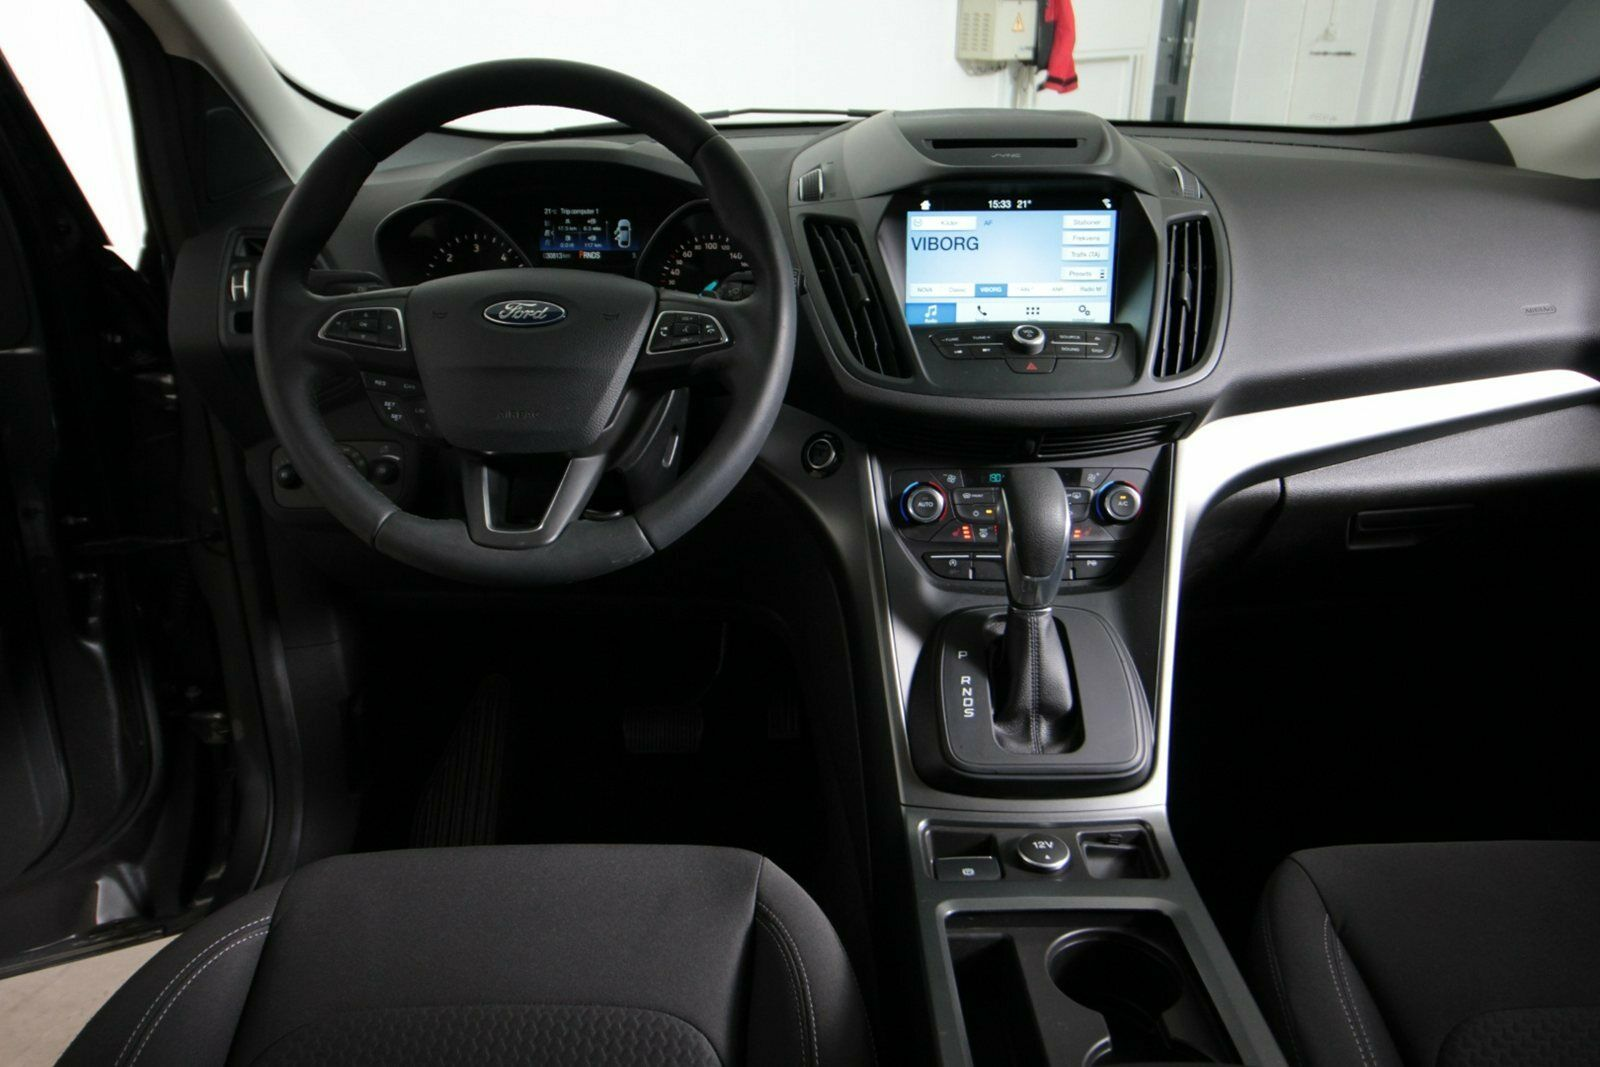 Ford Kuga TDCi 120 Trend+ aut.